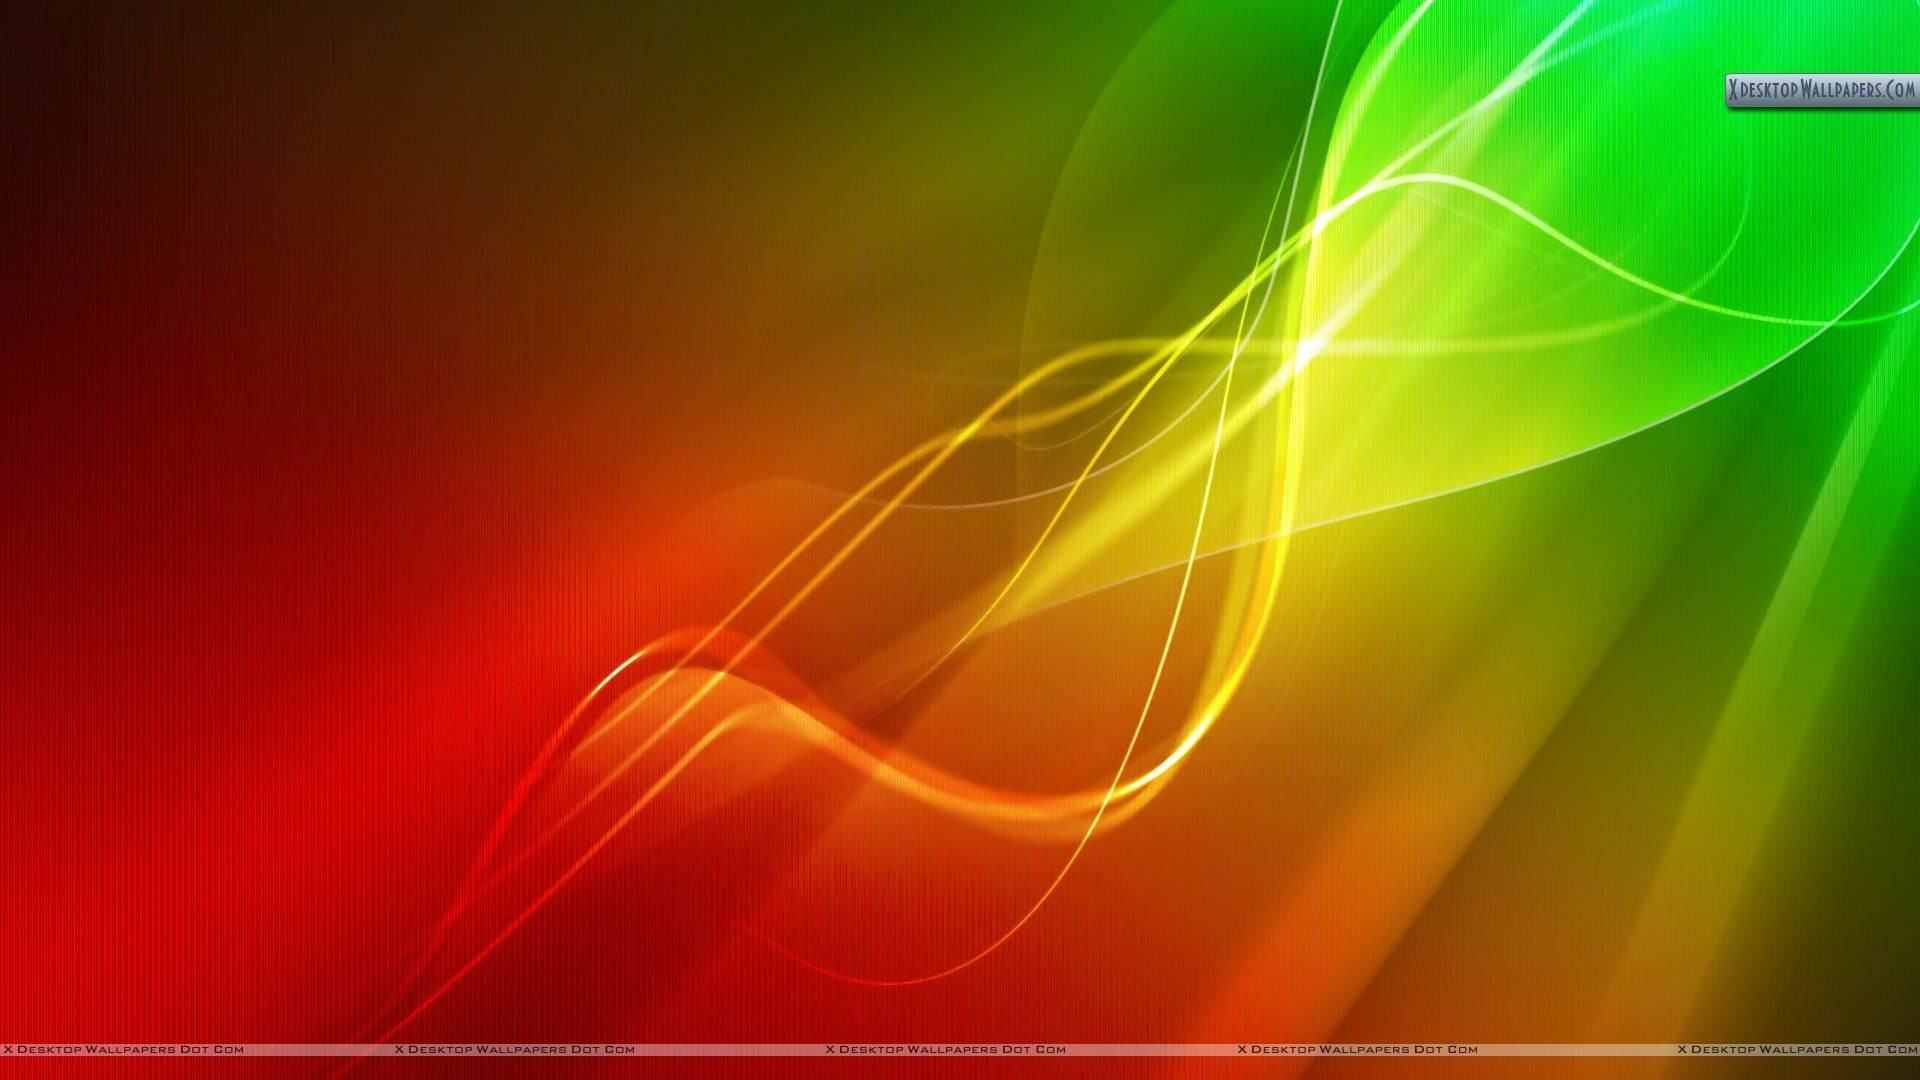 1920x1080 Wallpapers Backgrounds - Black abstract green lights red wallpaper desktop  white